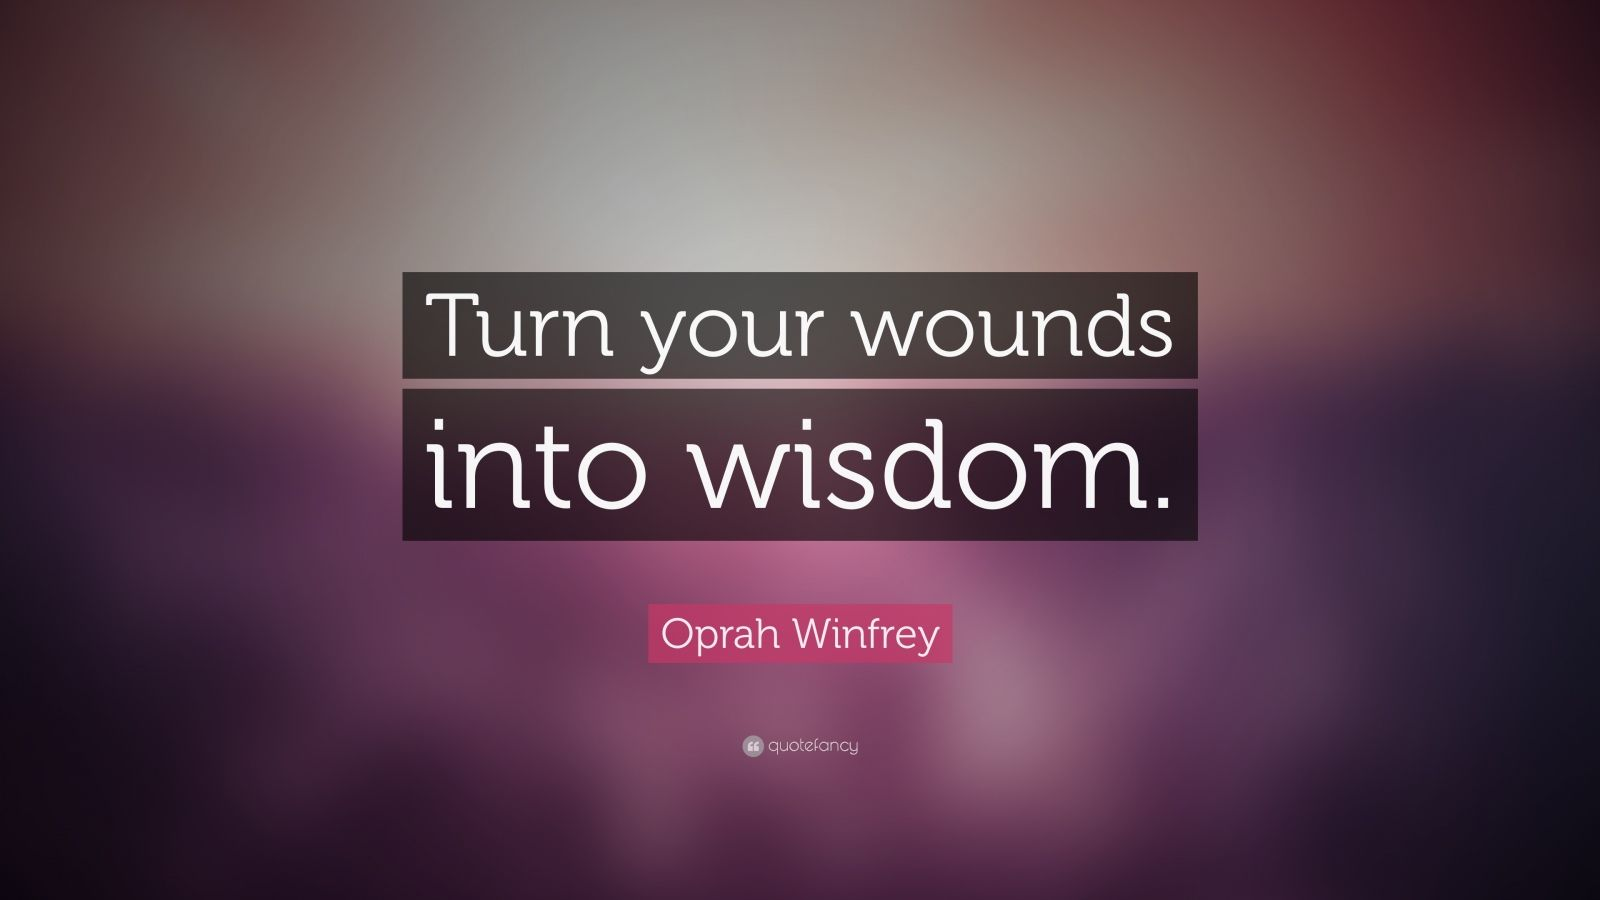 Mother Love Wallpapers With Quotes Oprah Winfrey Quote Turn Your Wounds Into Wisdom 20